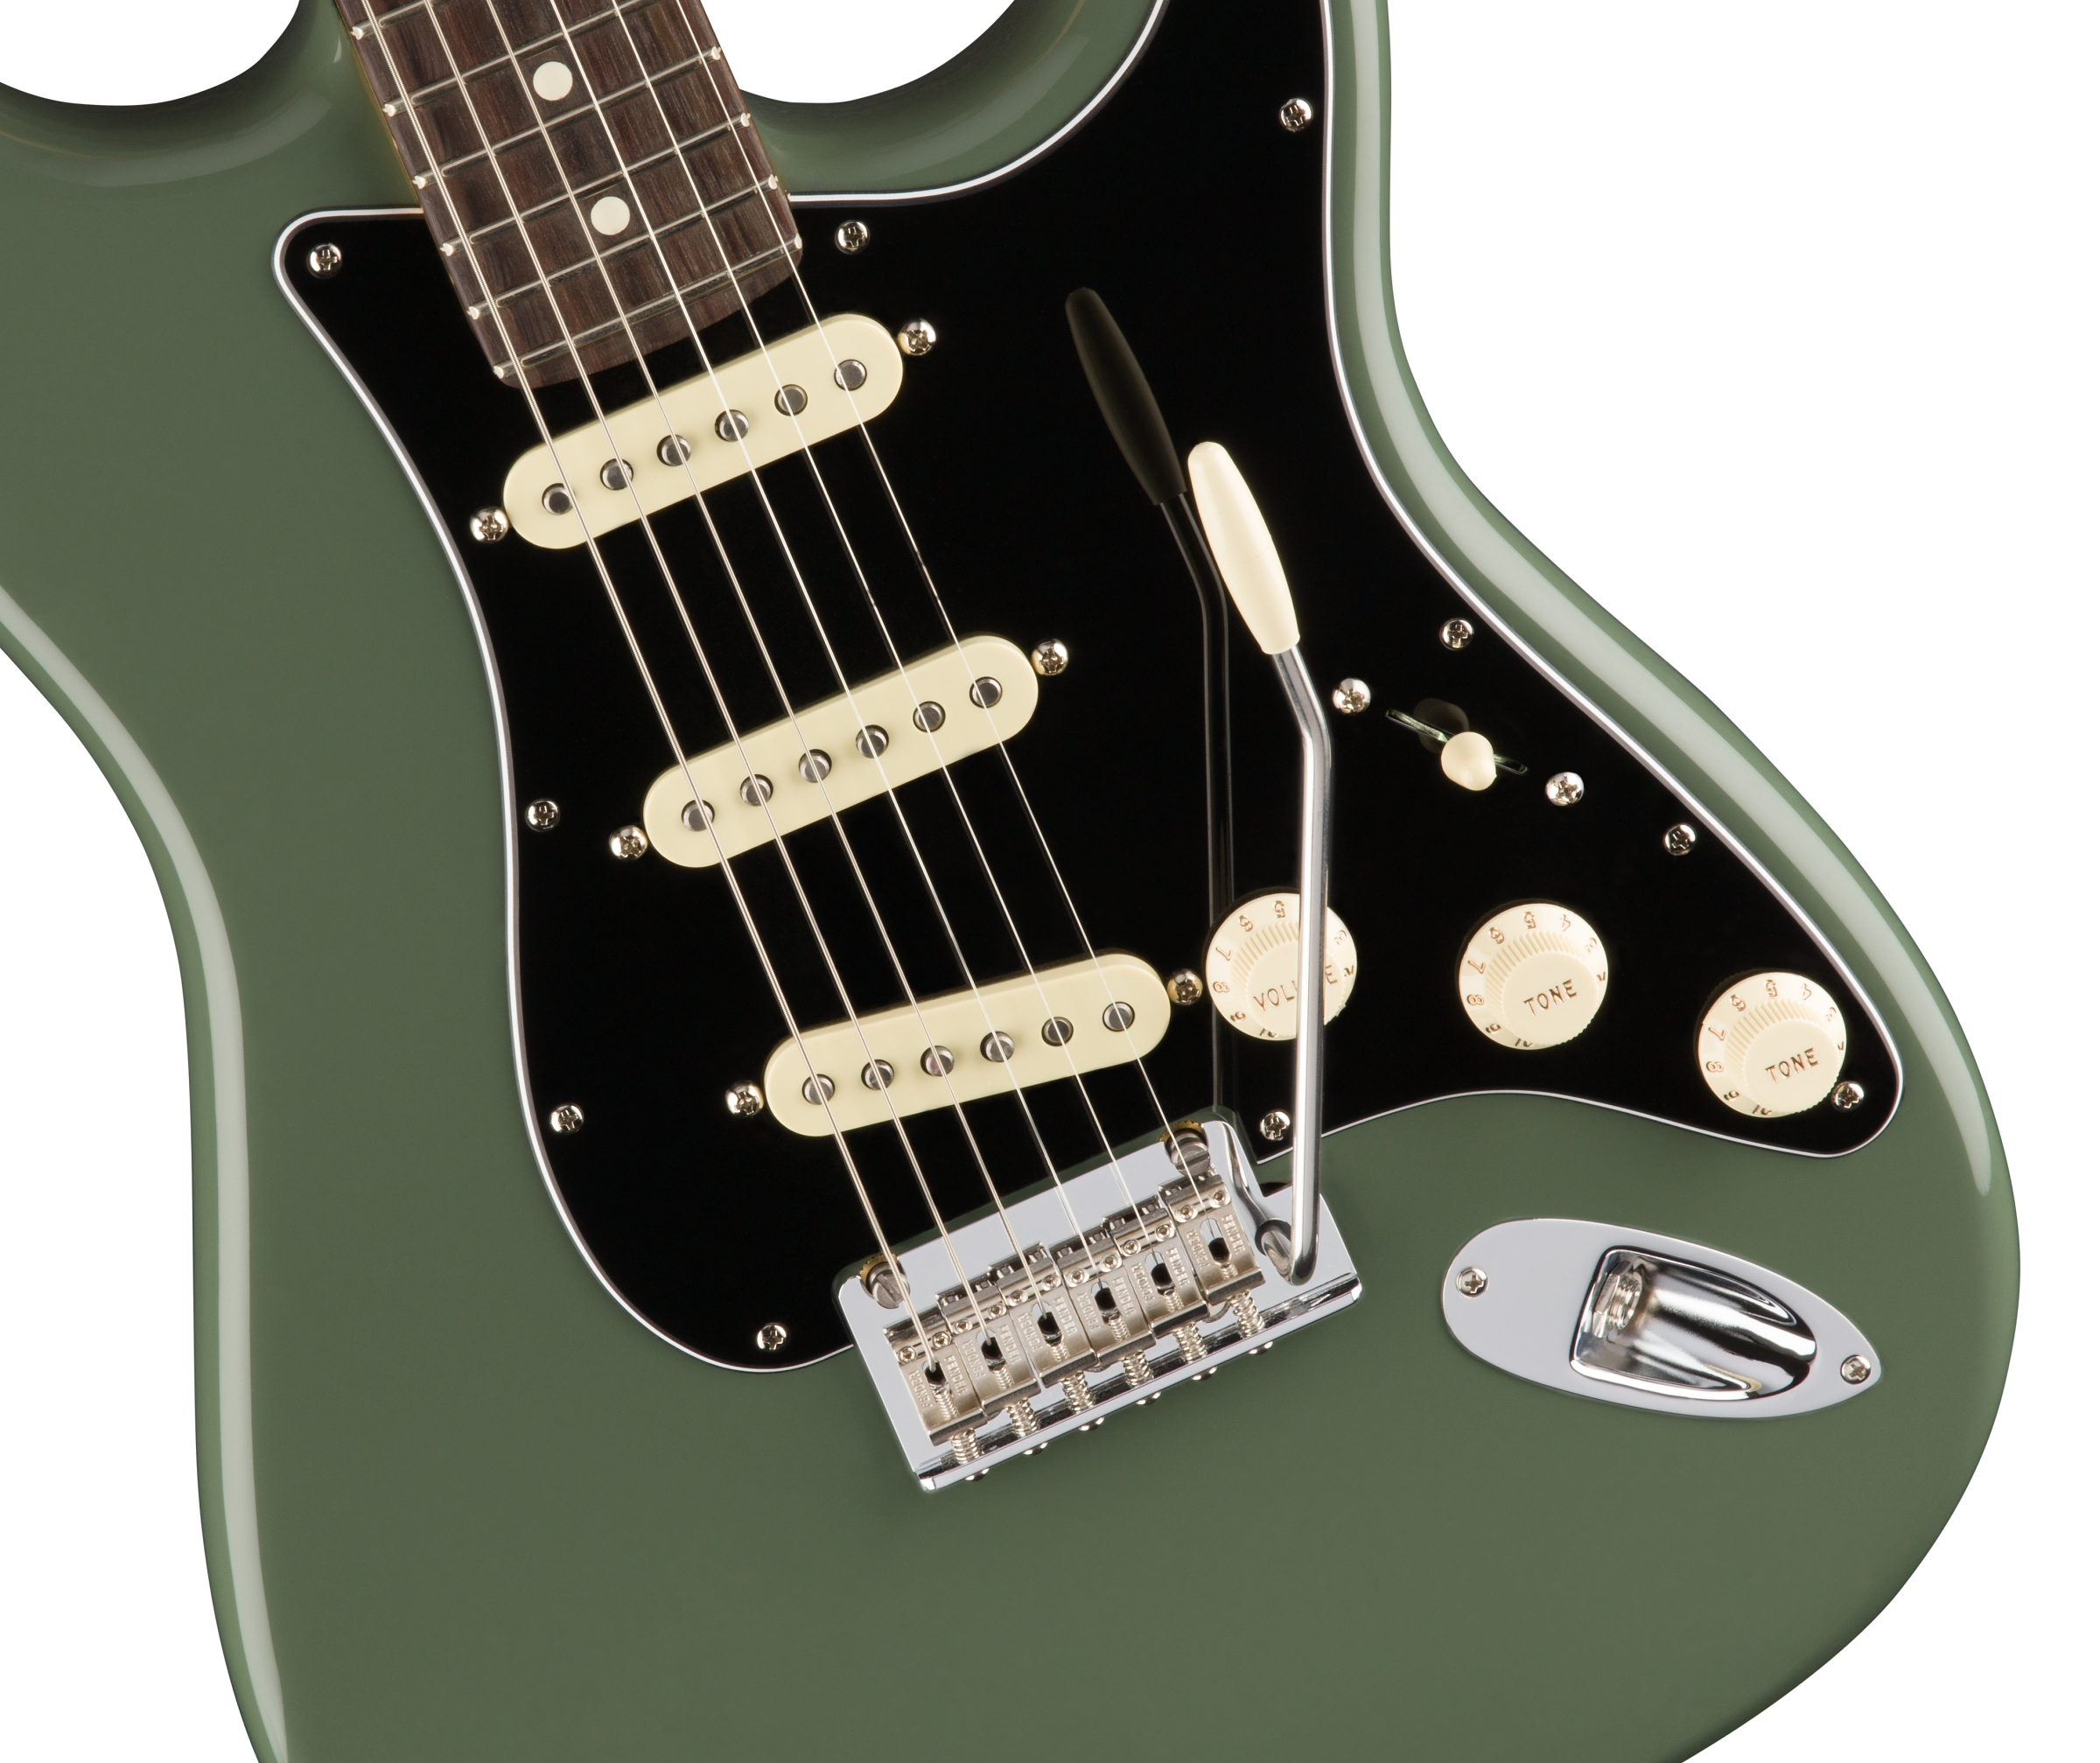 American Professional Stratocaster Electric Guitars Pickup Wiring Diagram On Fender Hss Strat 1 Vol 2 Tone